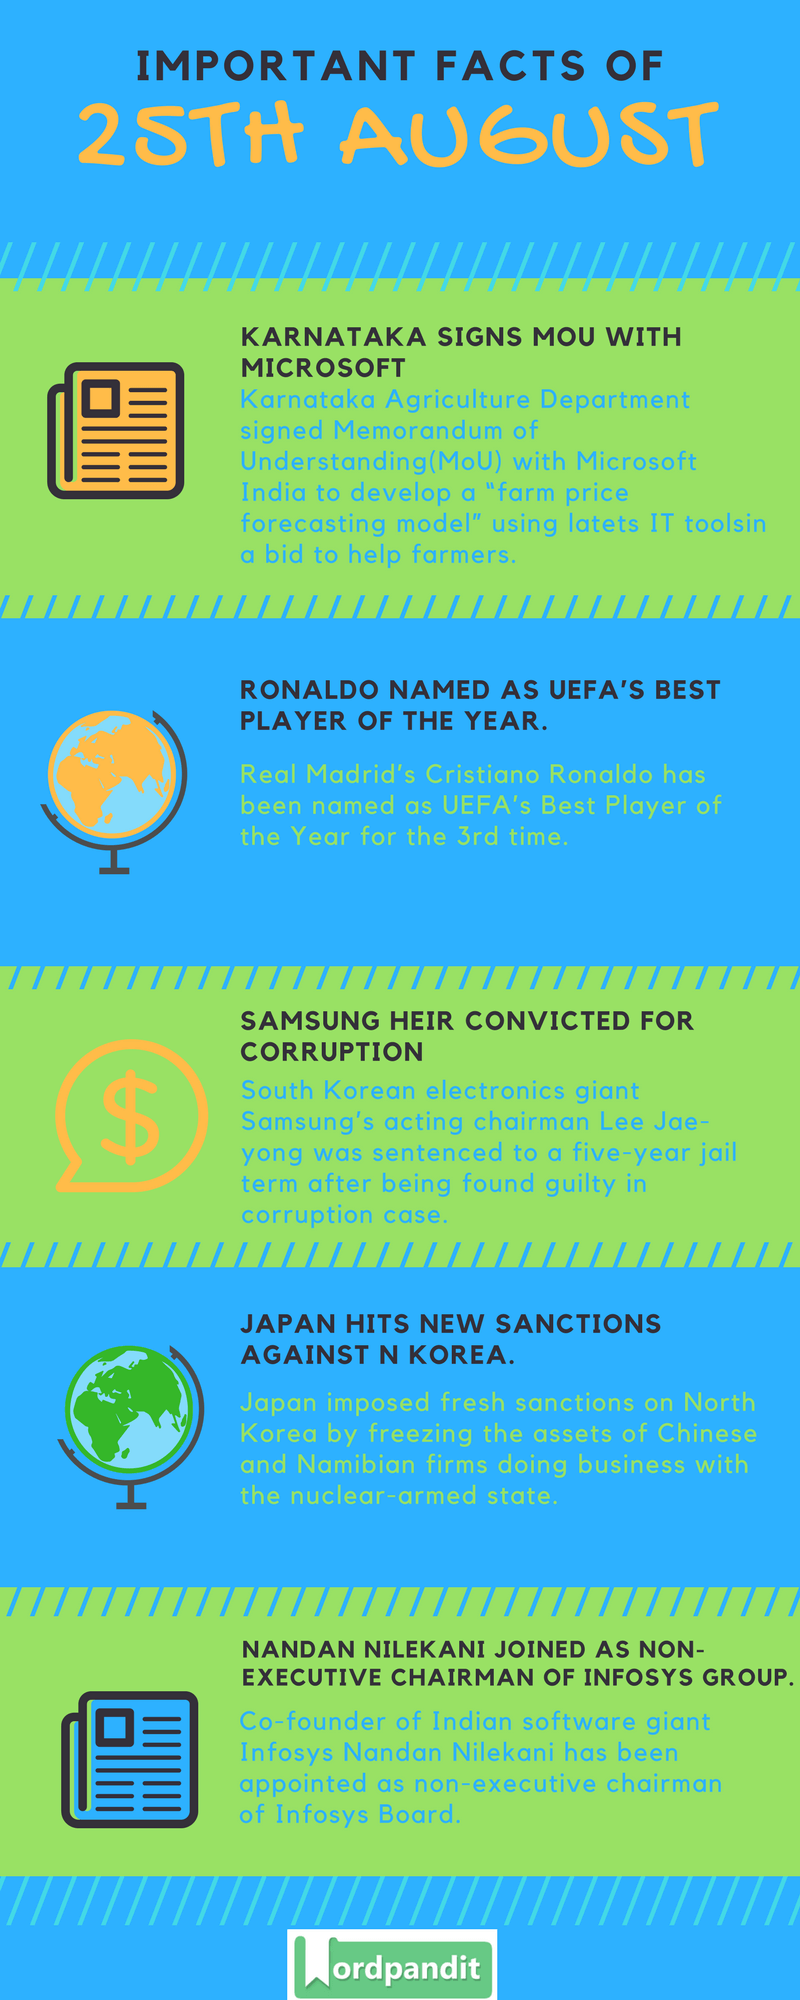 Daily-Current-Affairs-25-august-2017-Current-Affairs-Quiz-august-25-2017-Current-Affairs-Infographic